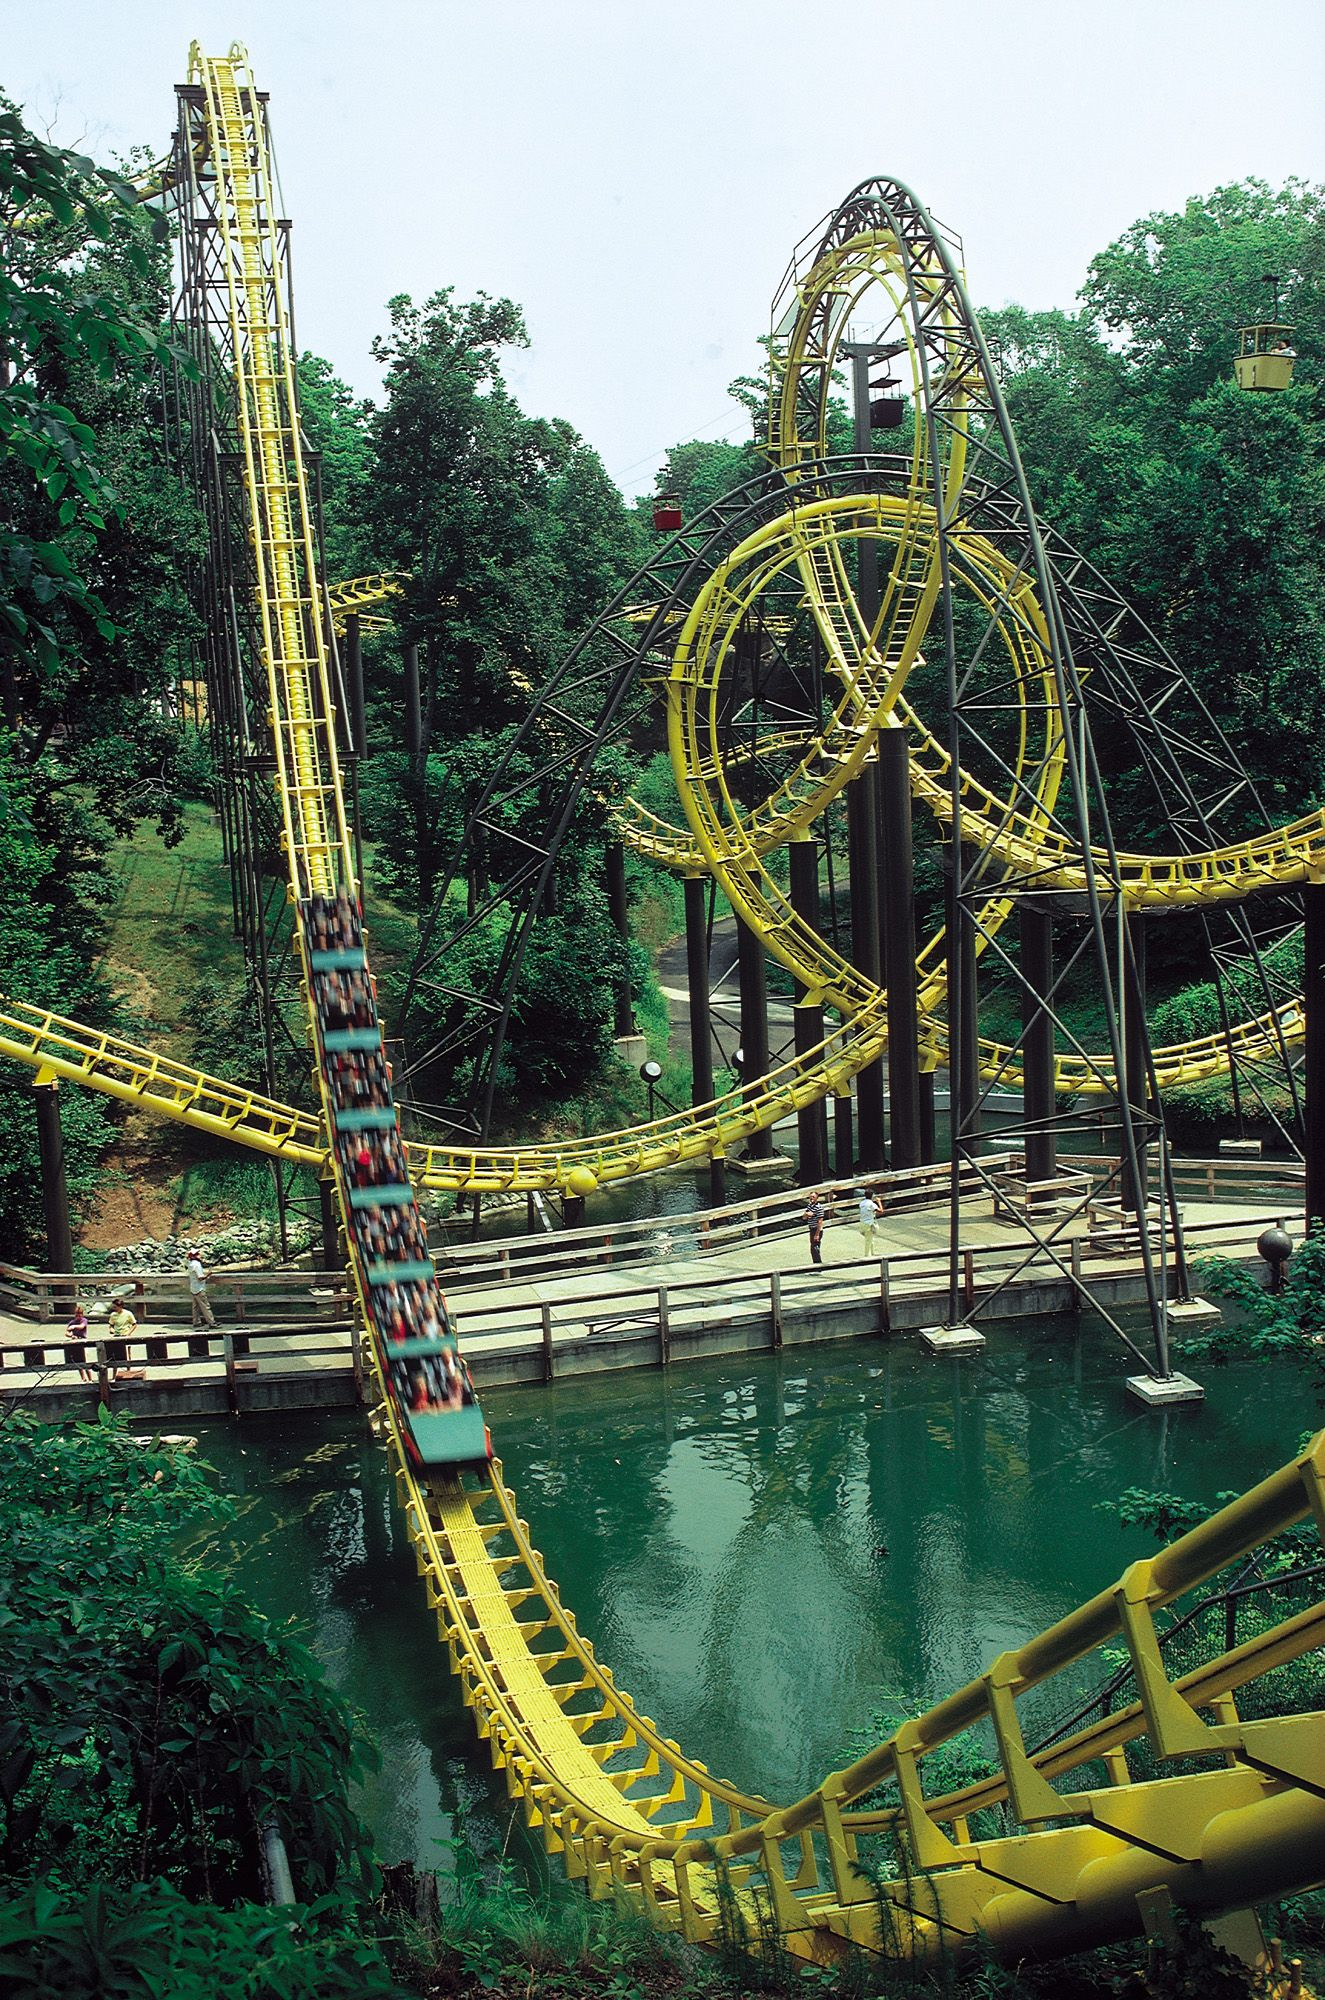 Loch Ness Monster This Interlocking Double Looping